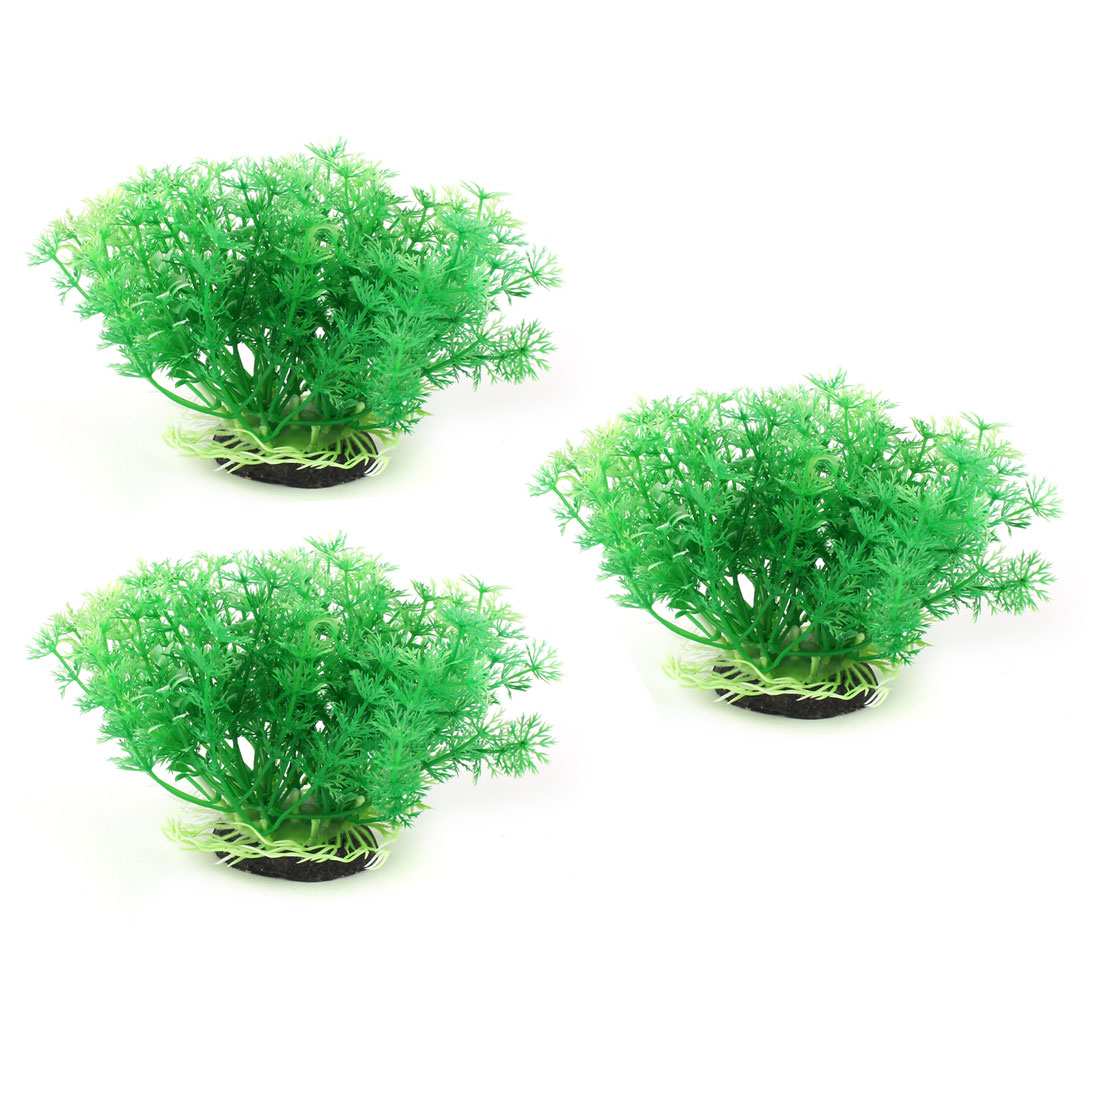 Aquarium Fish Tank Ceramic Base Plastic Underwater Plant Landscape Decor Green 3pcs